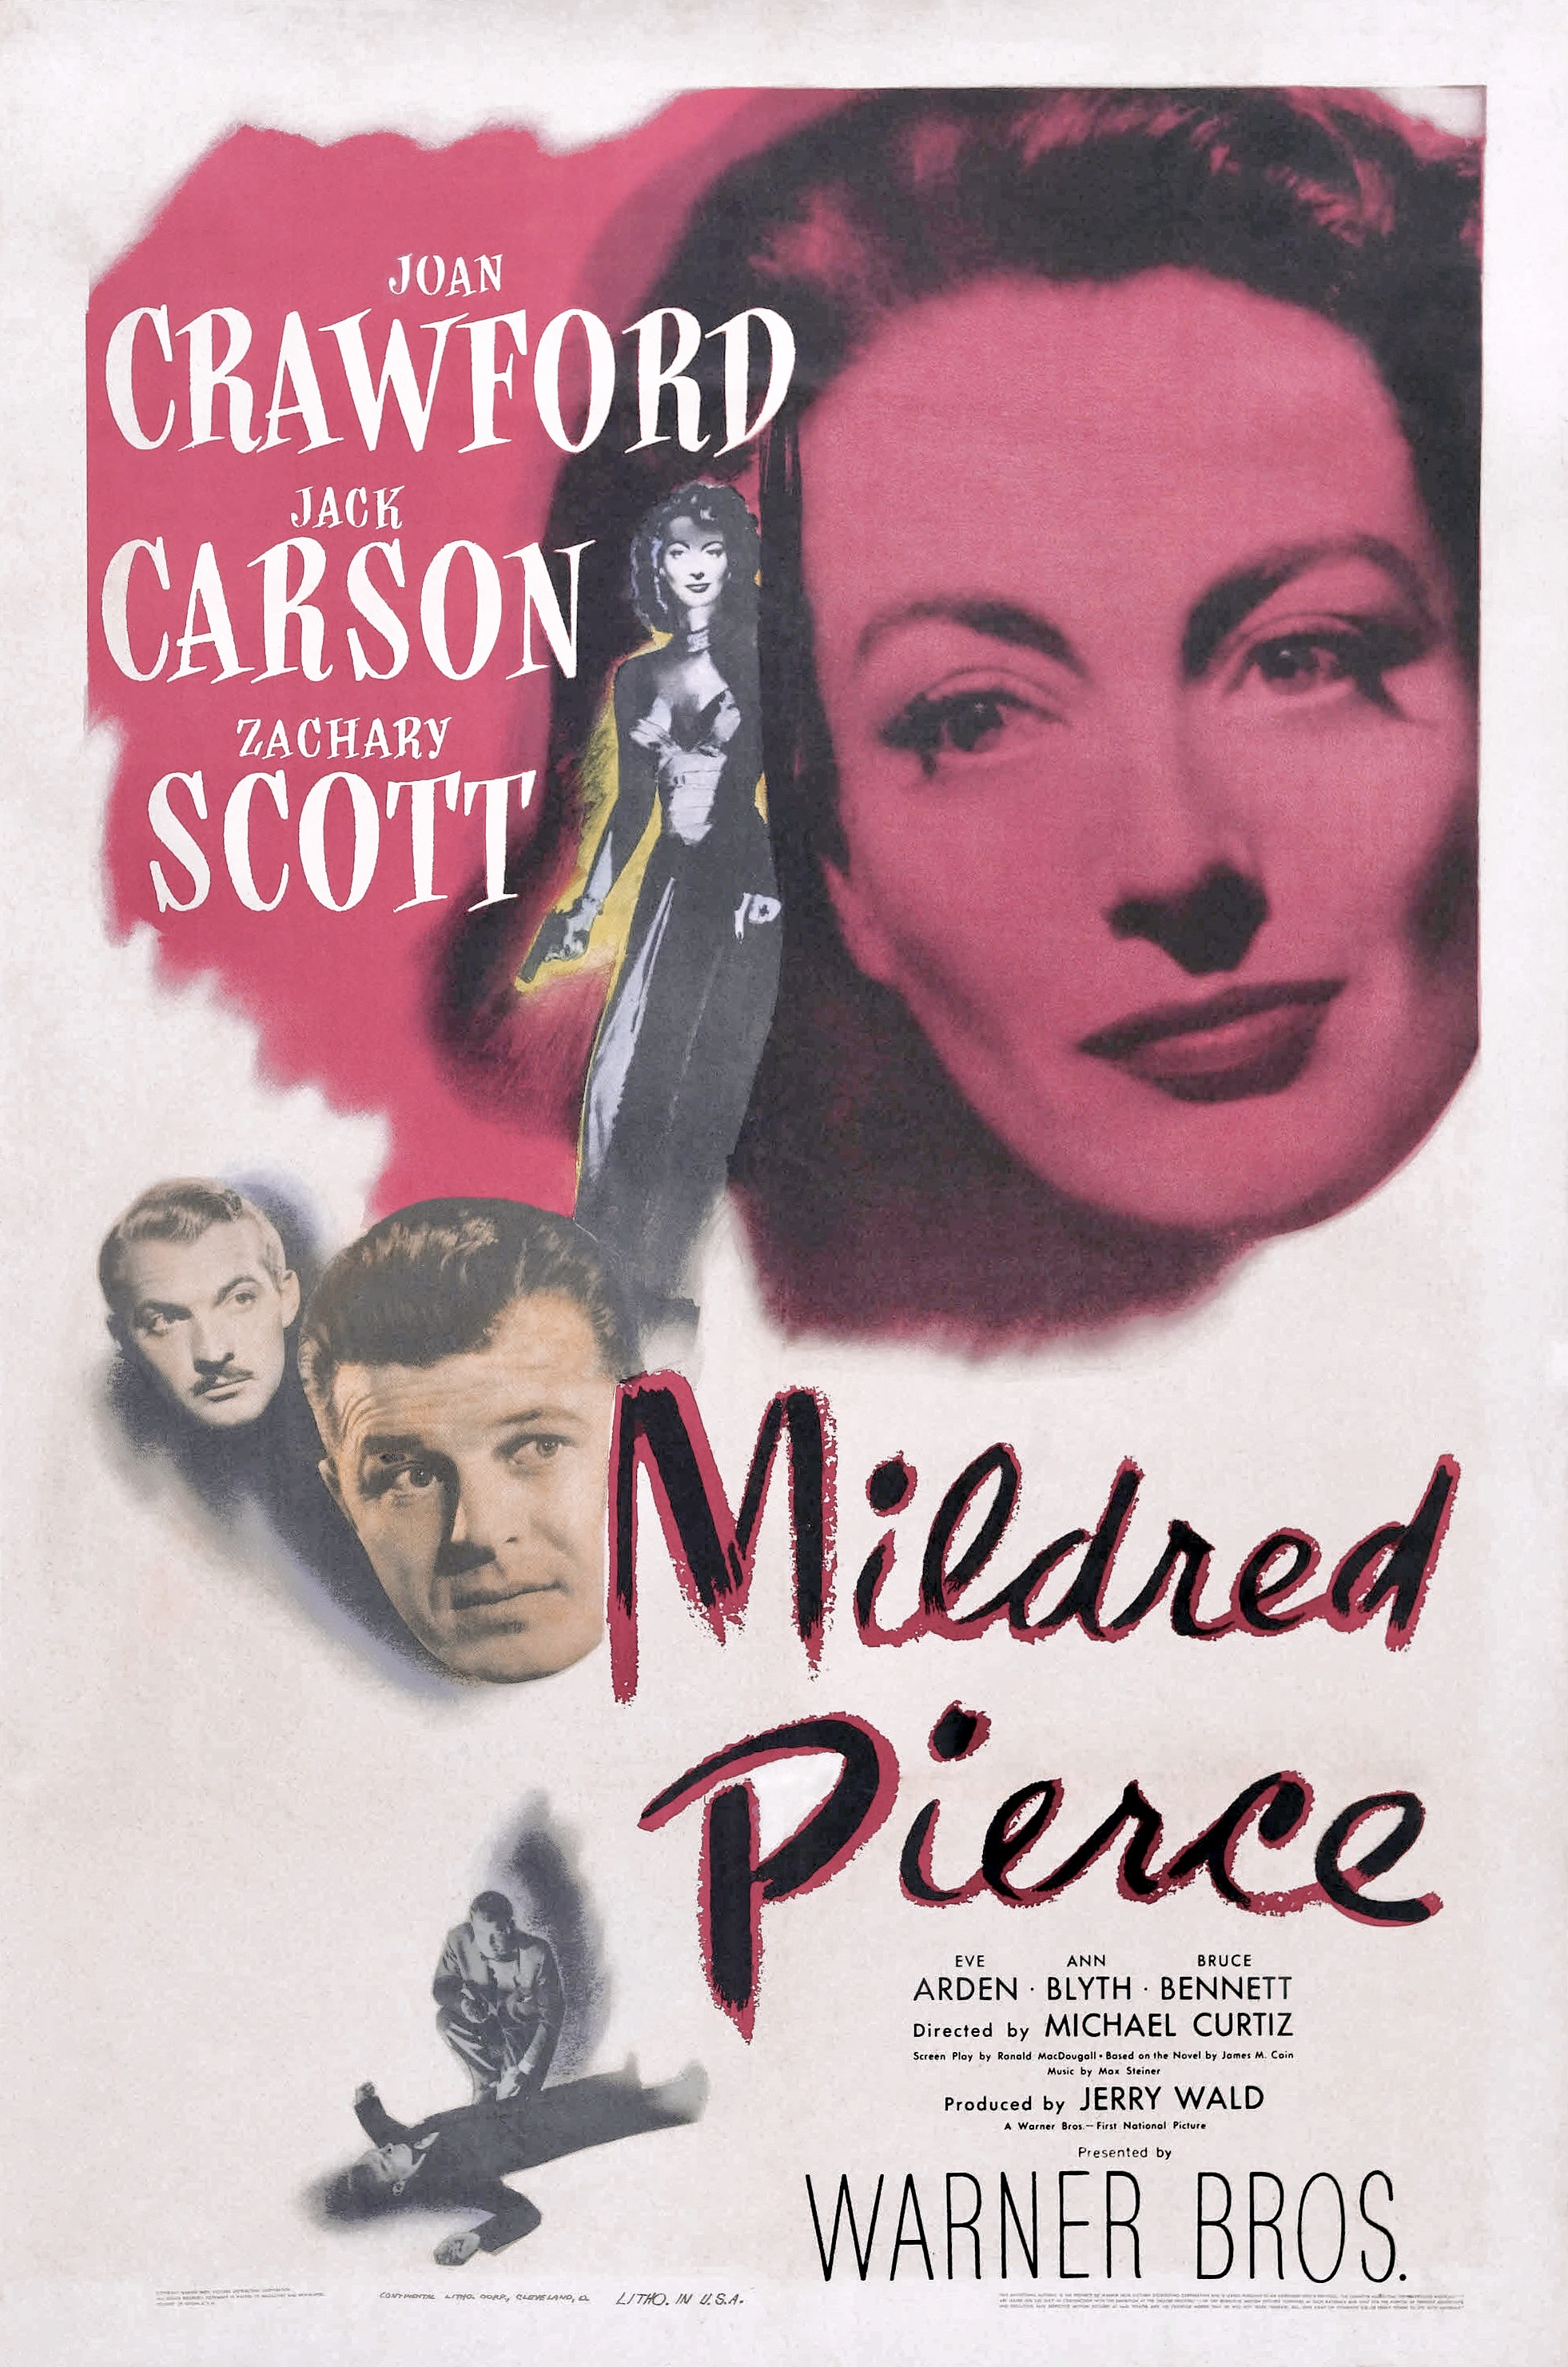 Mildred Pierce (1945) - Directed by: Michael CurtizStarring: Joan Crawford, Jack Carson, Zachary Scott, Ann Blyth, Bruce BennettRated: Passed (TMM Suggested PG-13 for Thematic Material and Brief Violence)Running Time: 1 h 51 mTMM Score: 4 stars out of 5STRENGTHS: Story, Writing, Acting, DirectingWEAKNESSES: Mild Pacing Issues in Second Act